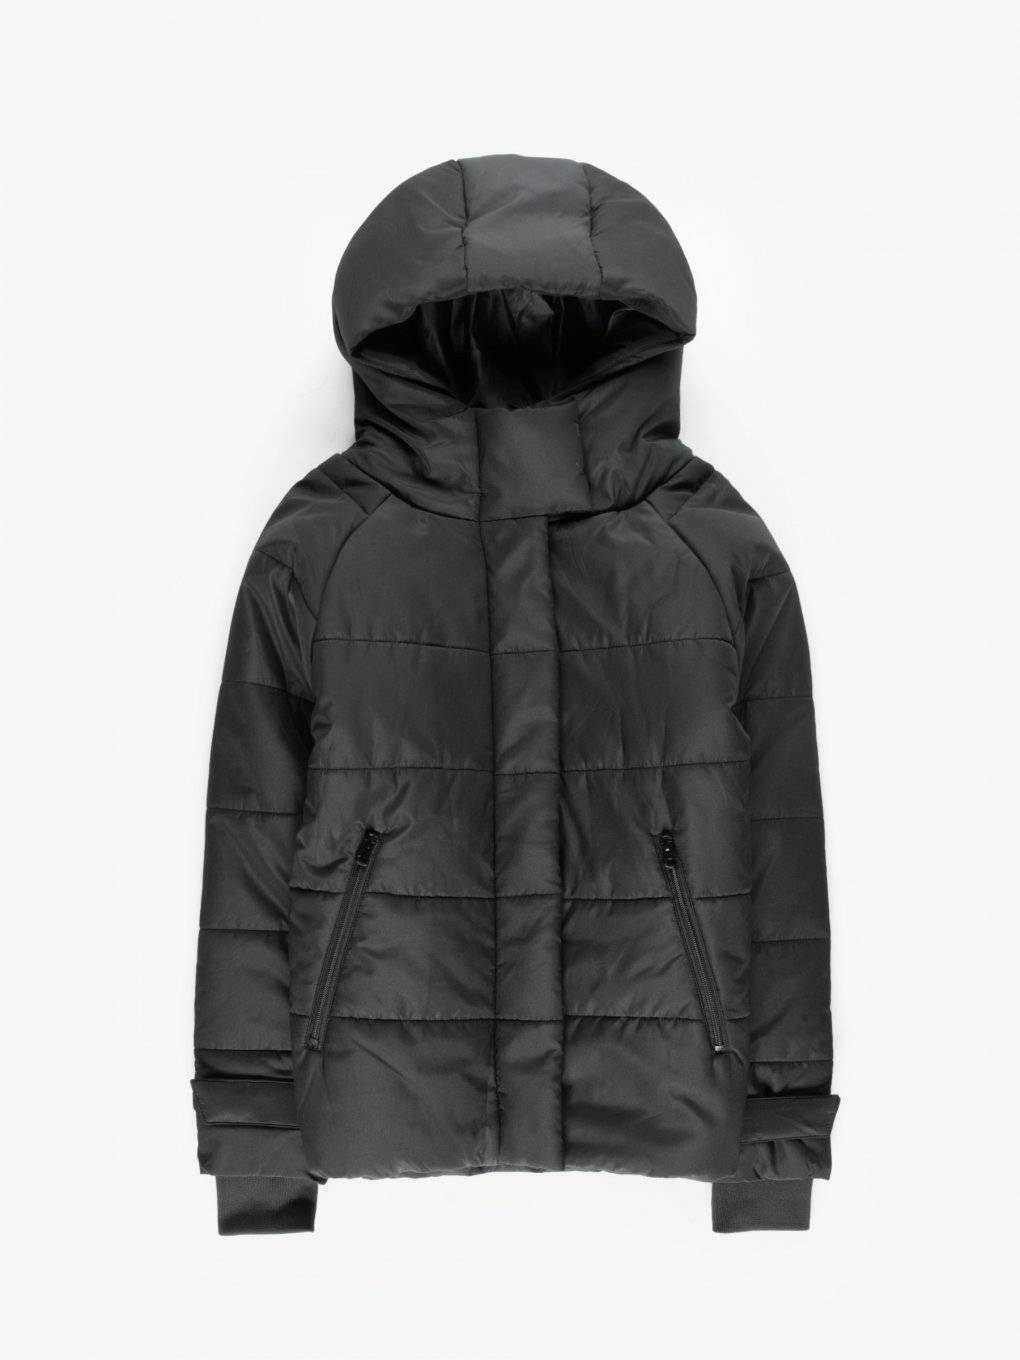 Quilted padded jacket with hood and inner backpack